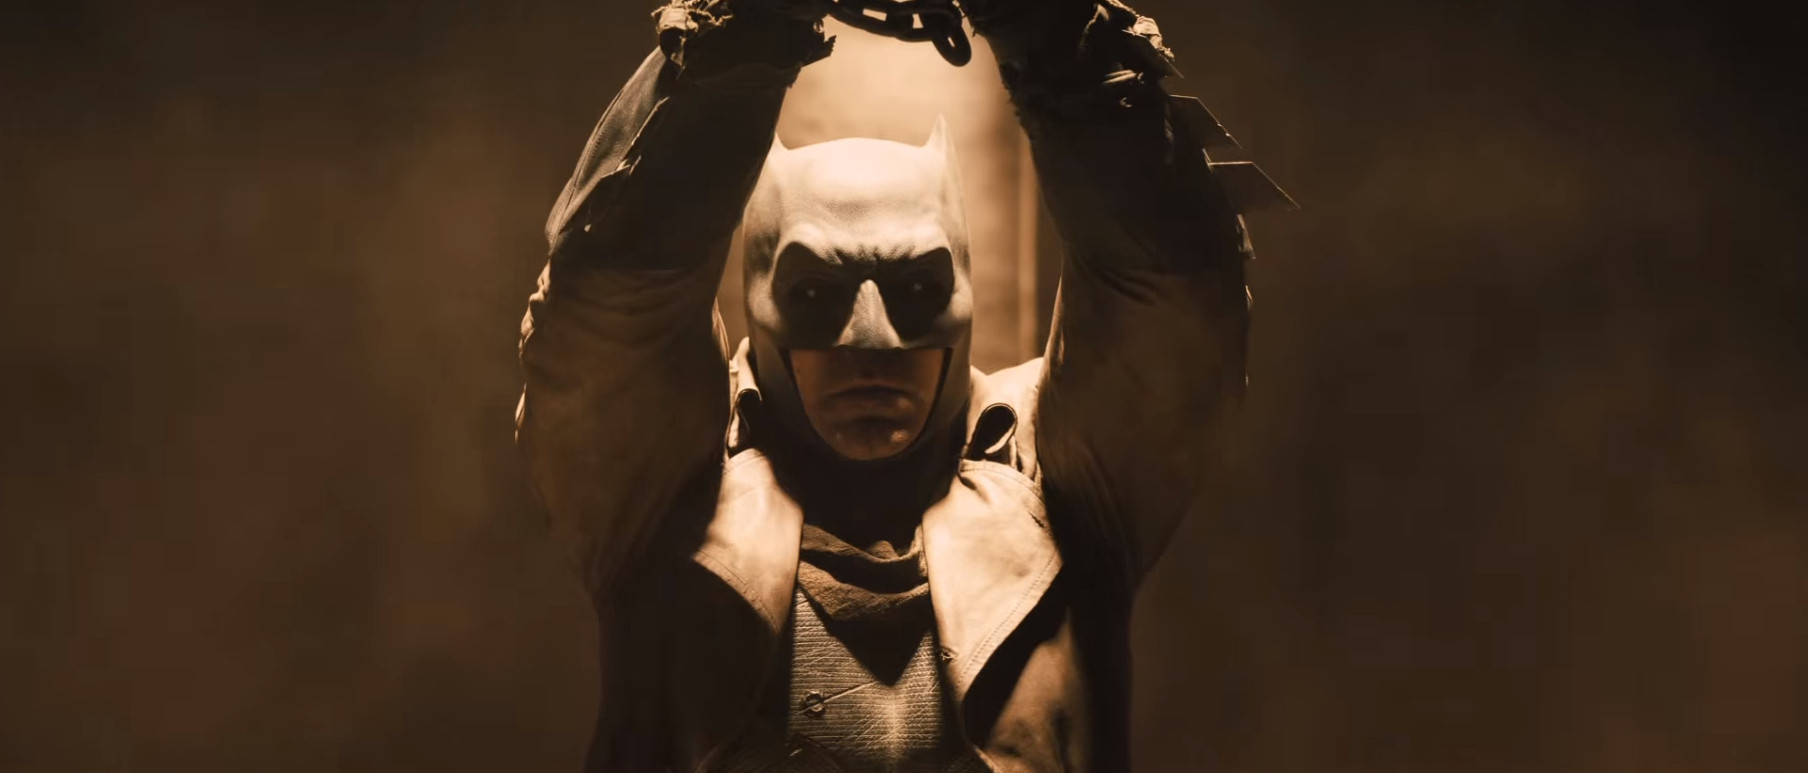 What's REALLY Going On in the new 'Batman v Superman' Teaser?